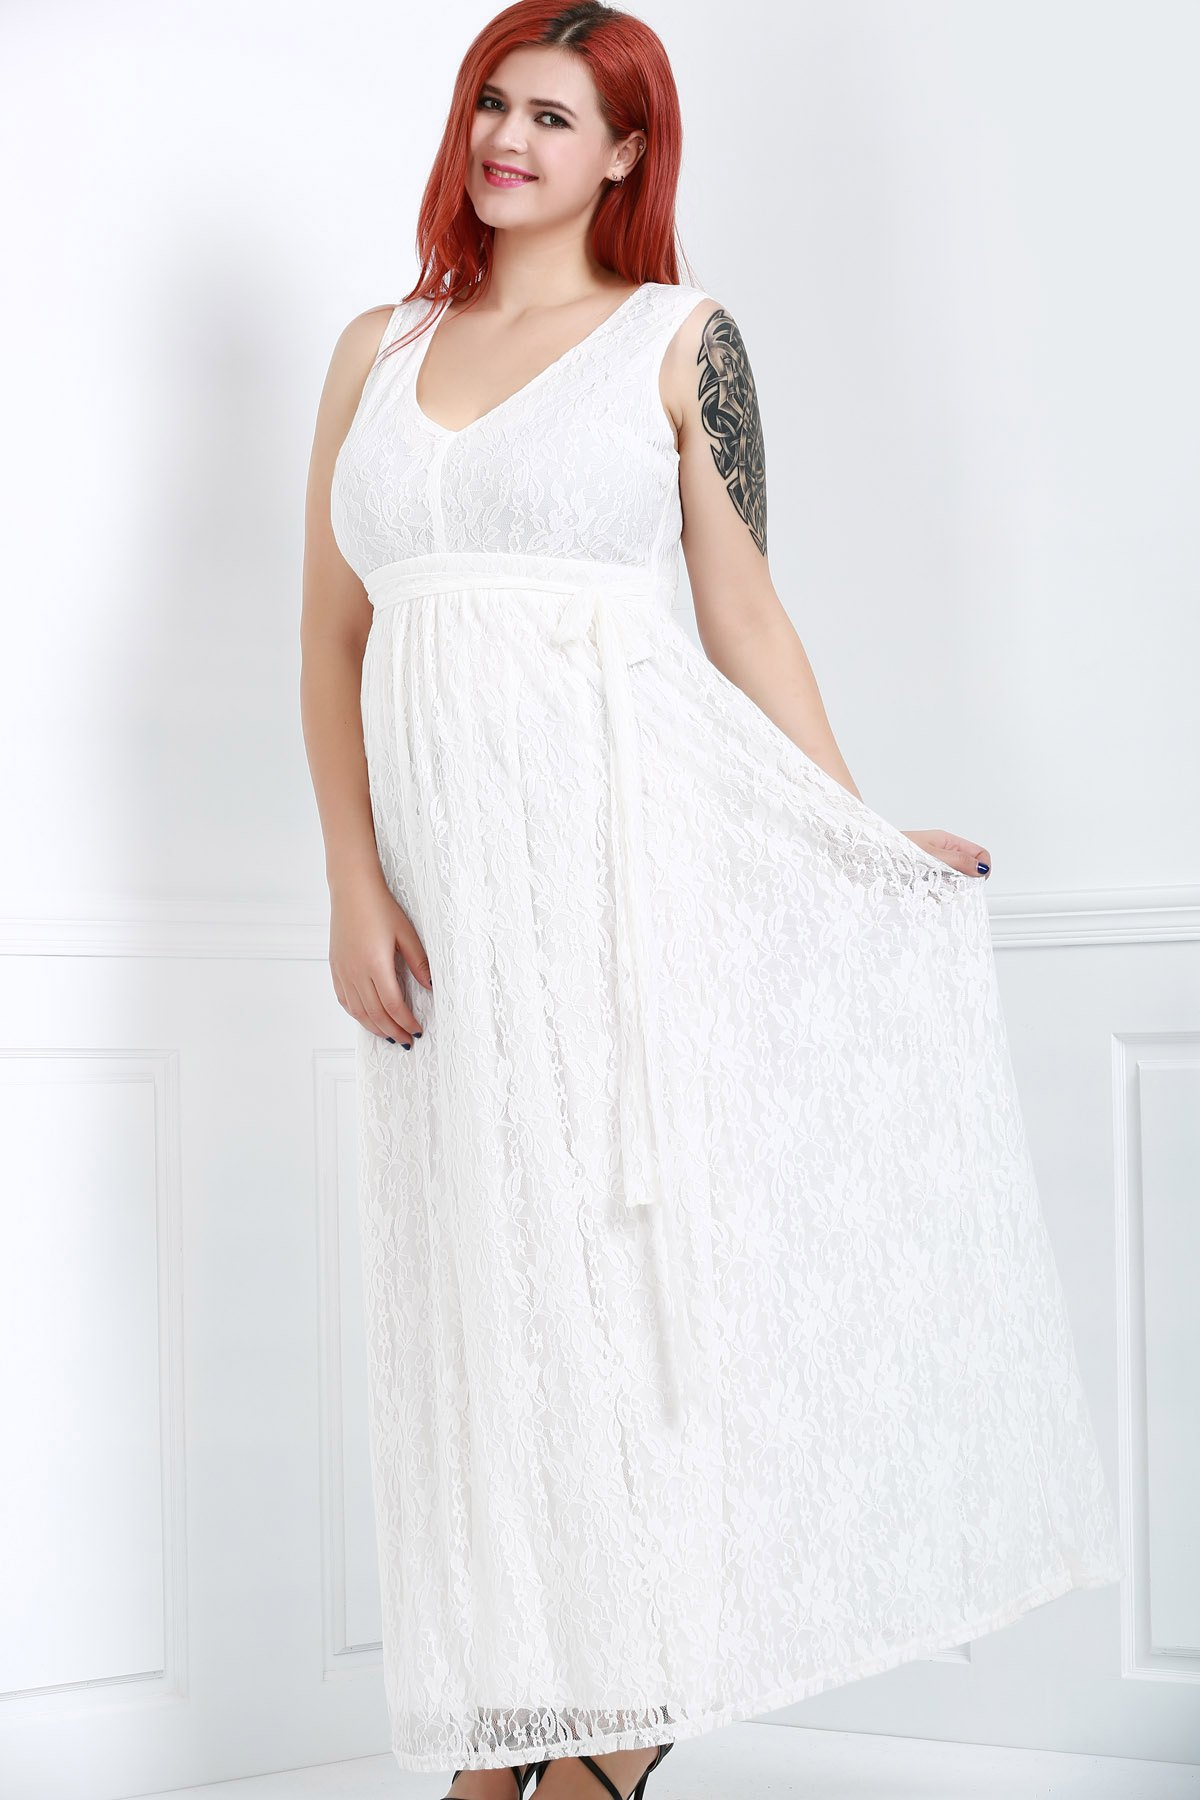 Women's Stylish Sleeveless V-Neck Lace Plus Size Dress - 2XL WHITE